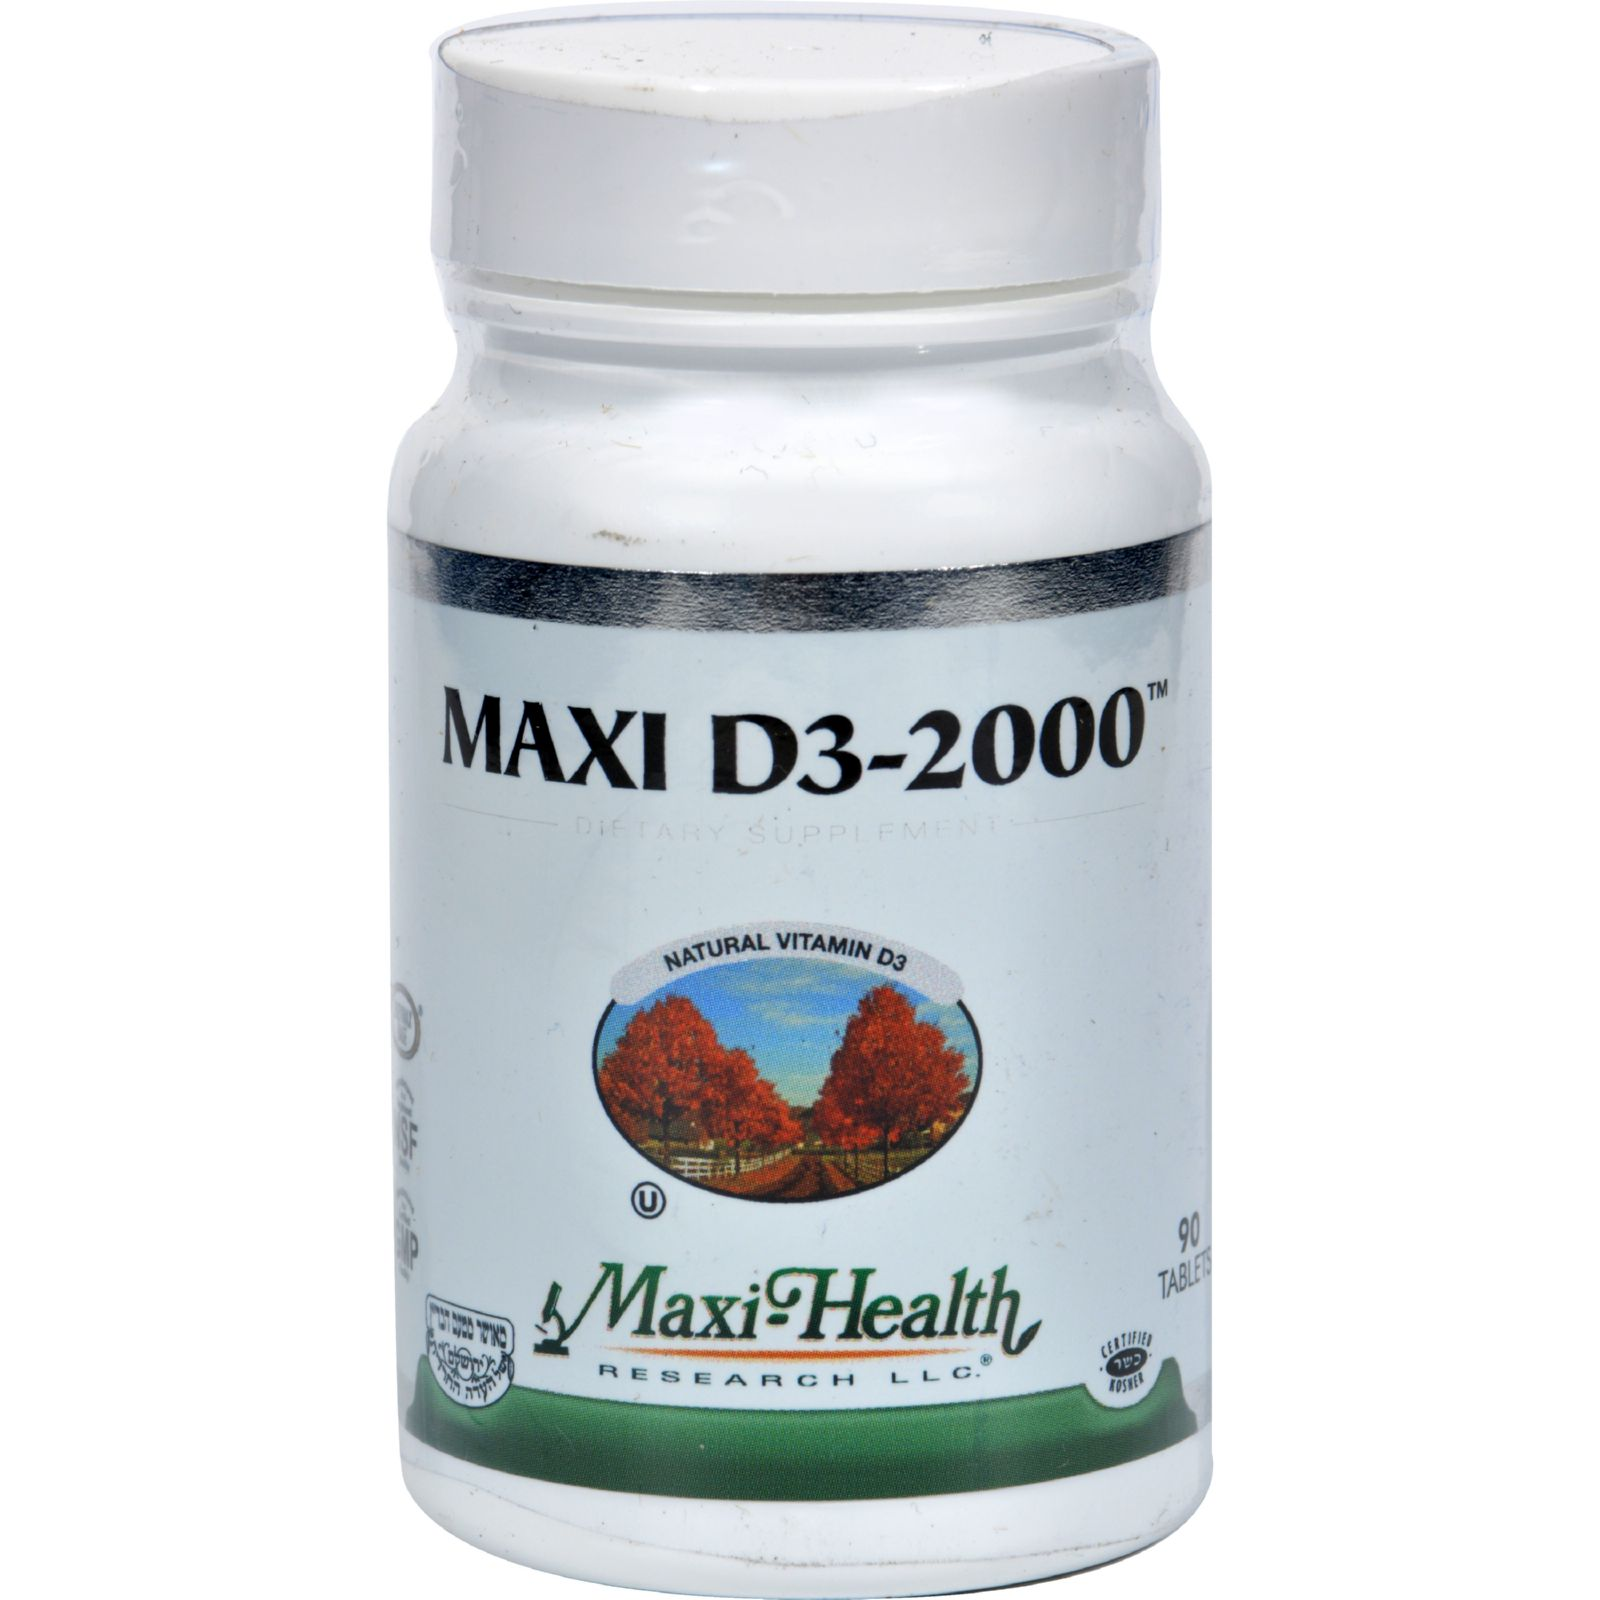 Maxi Health Kosher Vitamins Maxi D3 2000 - 2000 IU - 90 Tablets